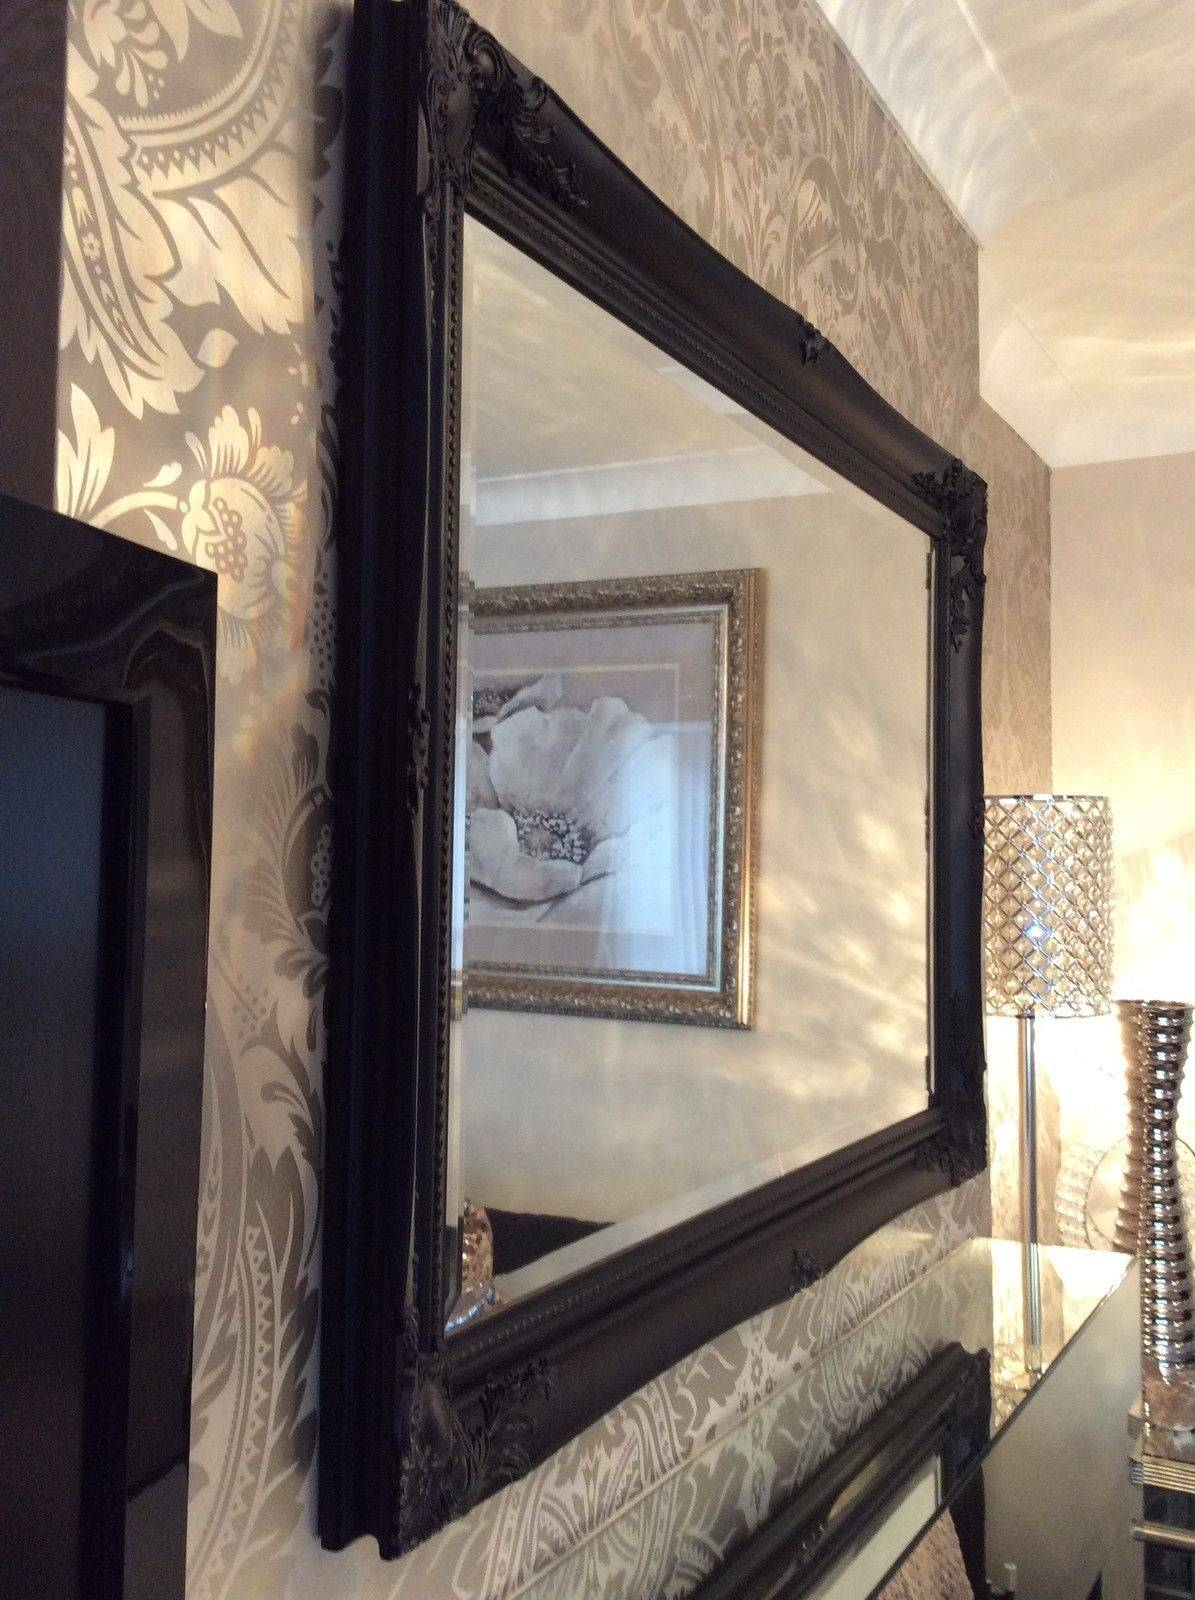 Black Shabby Chic Framed Ornate Overmantle Wall Mirror – Range Of Regarding Long Black Wall Mirrors (View 6 of 15)